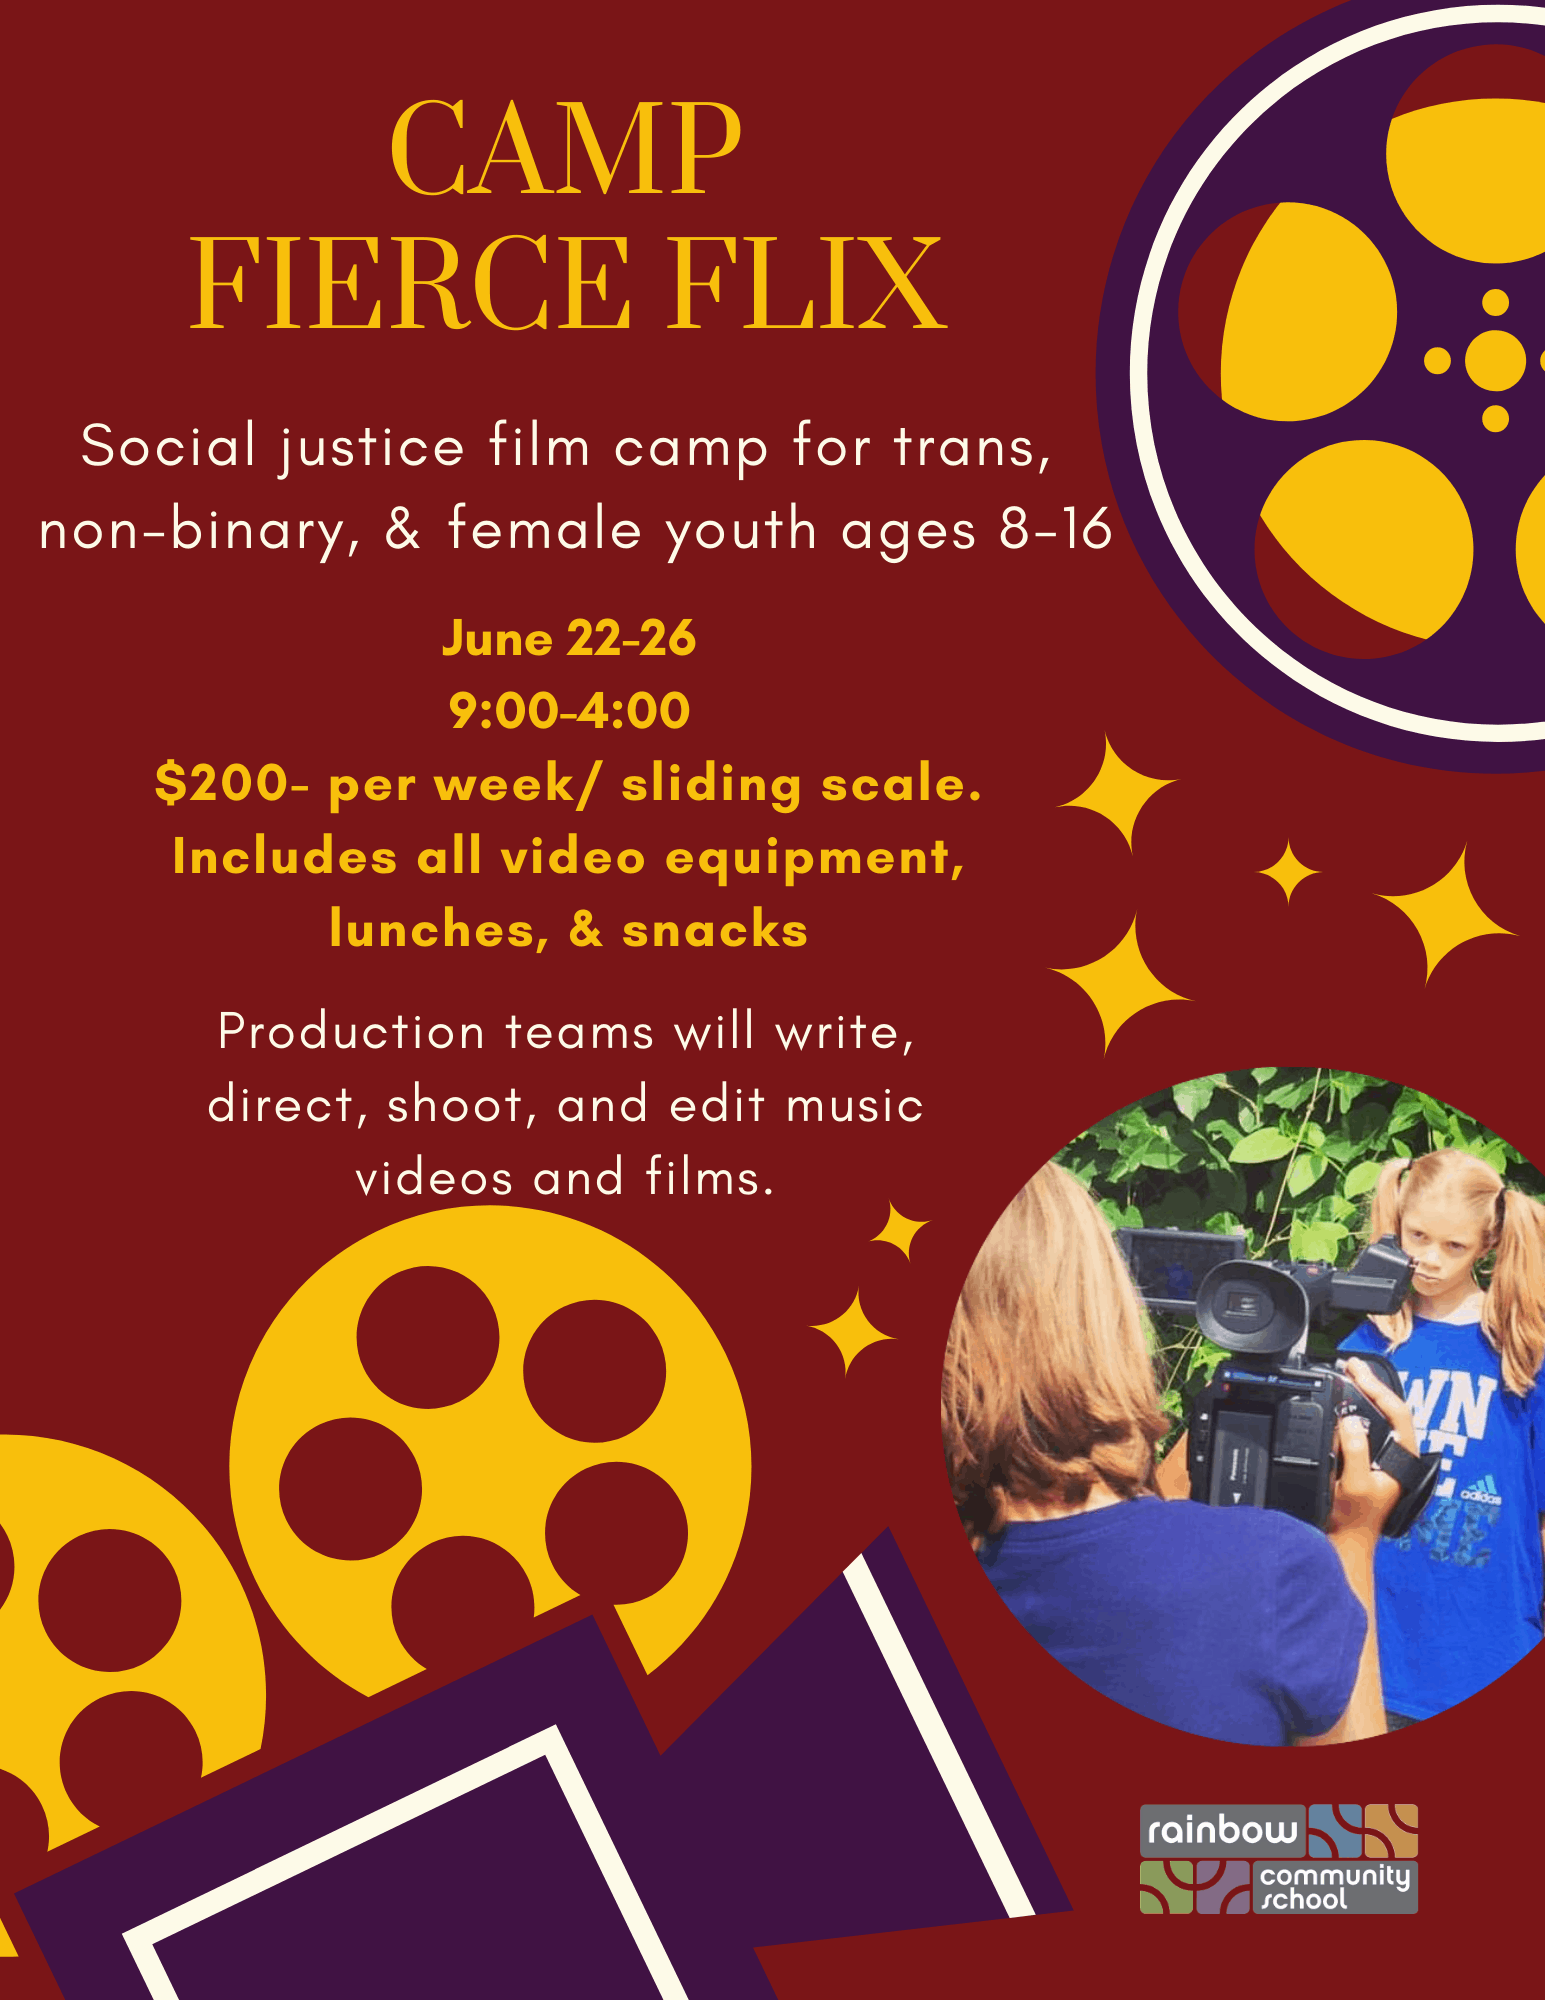 fierce flix summer camp